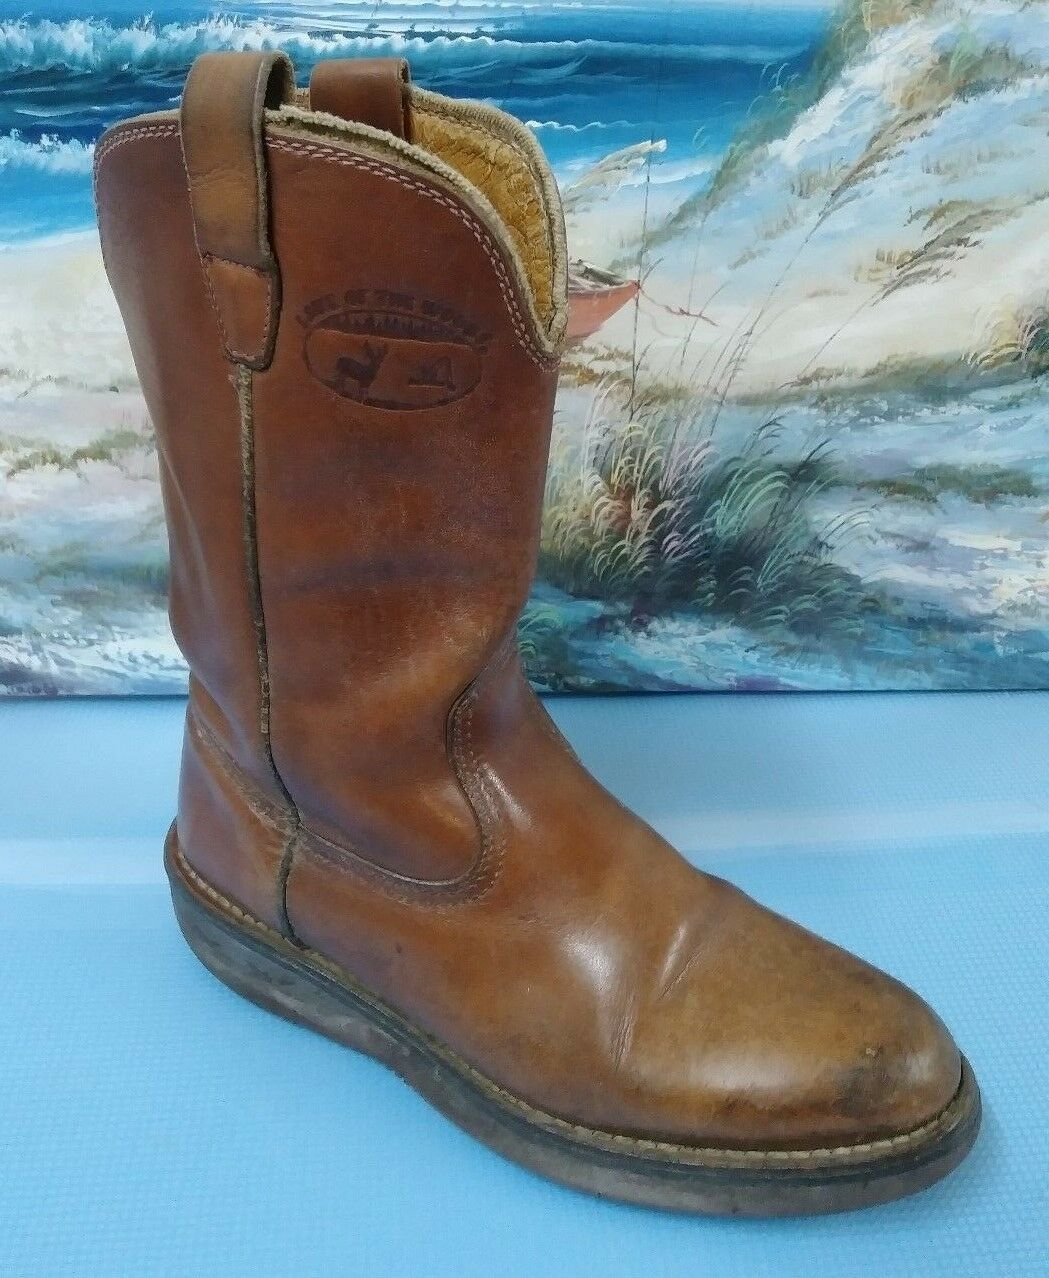 LAKE OF THE WOODS Men's Brown Leather Boots Western sz 8.5D